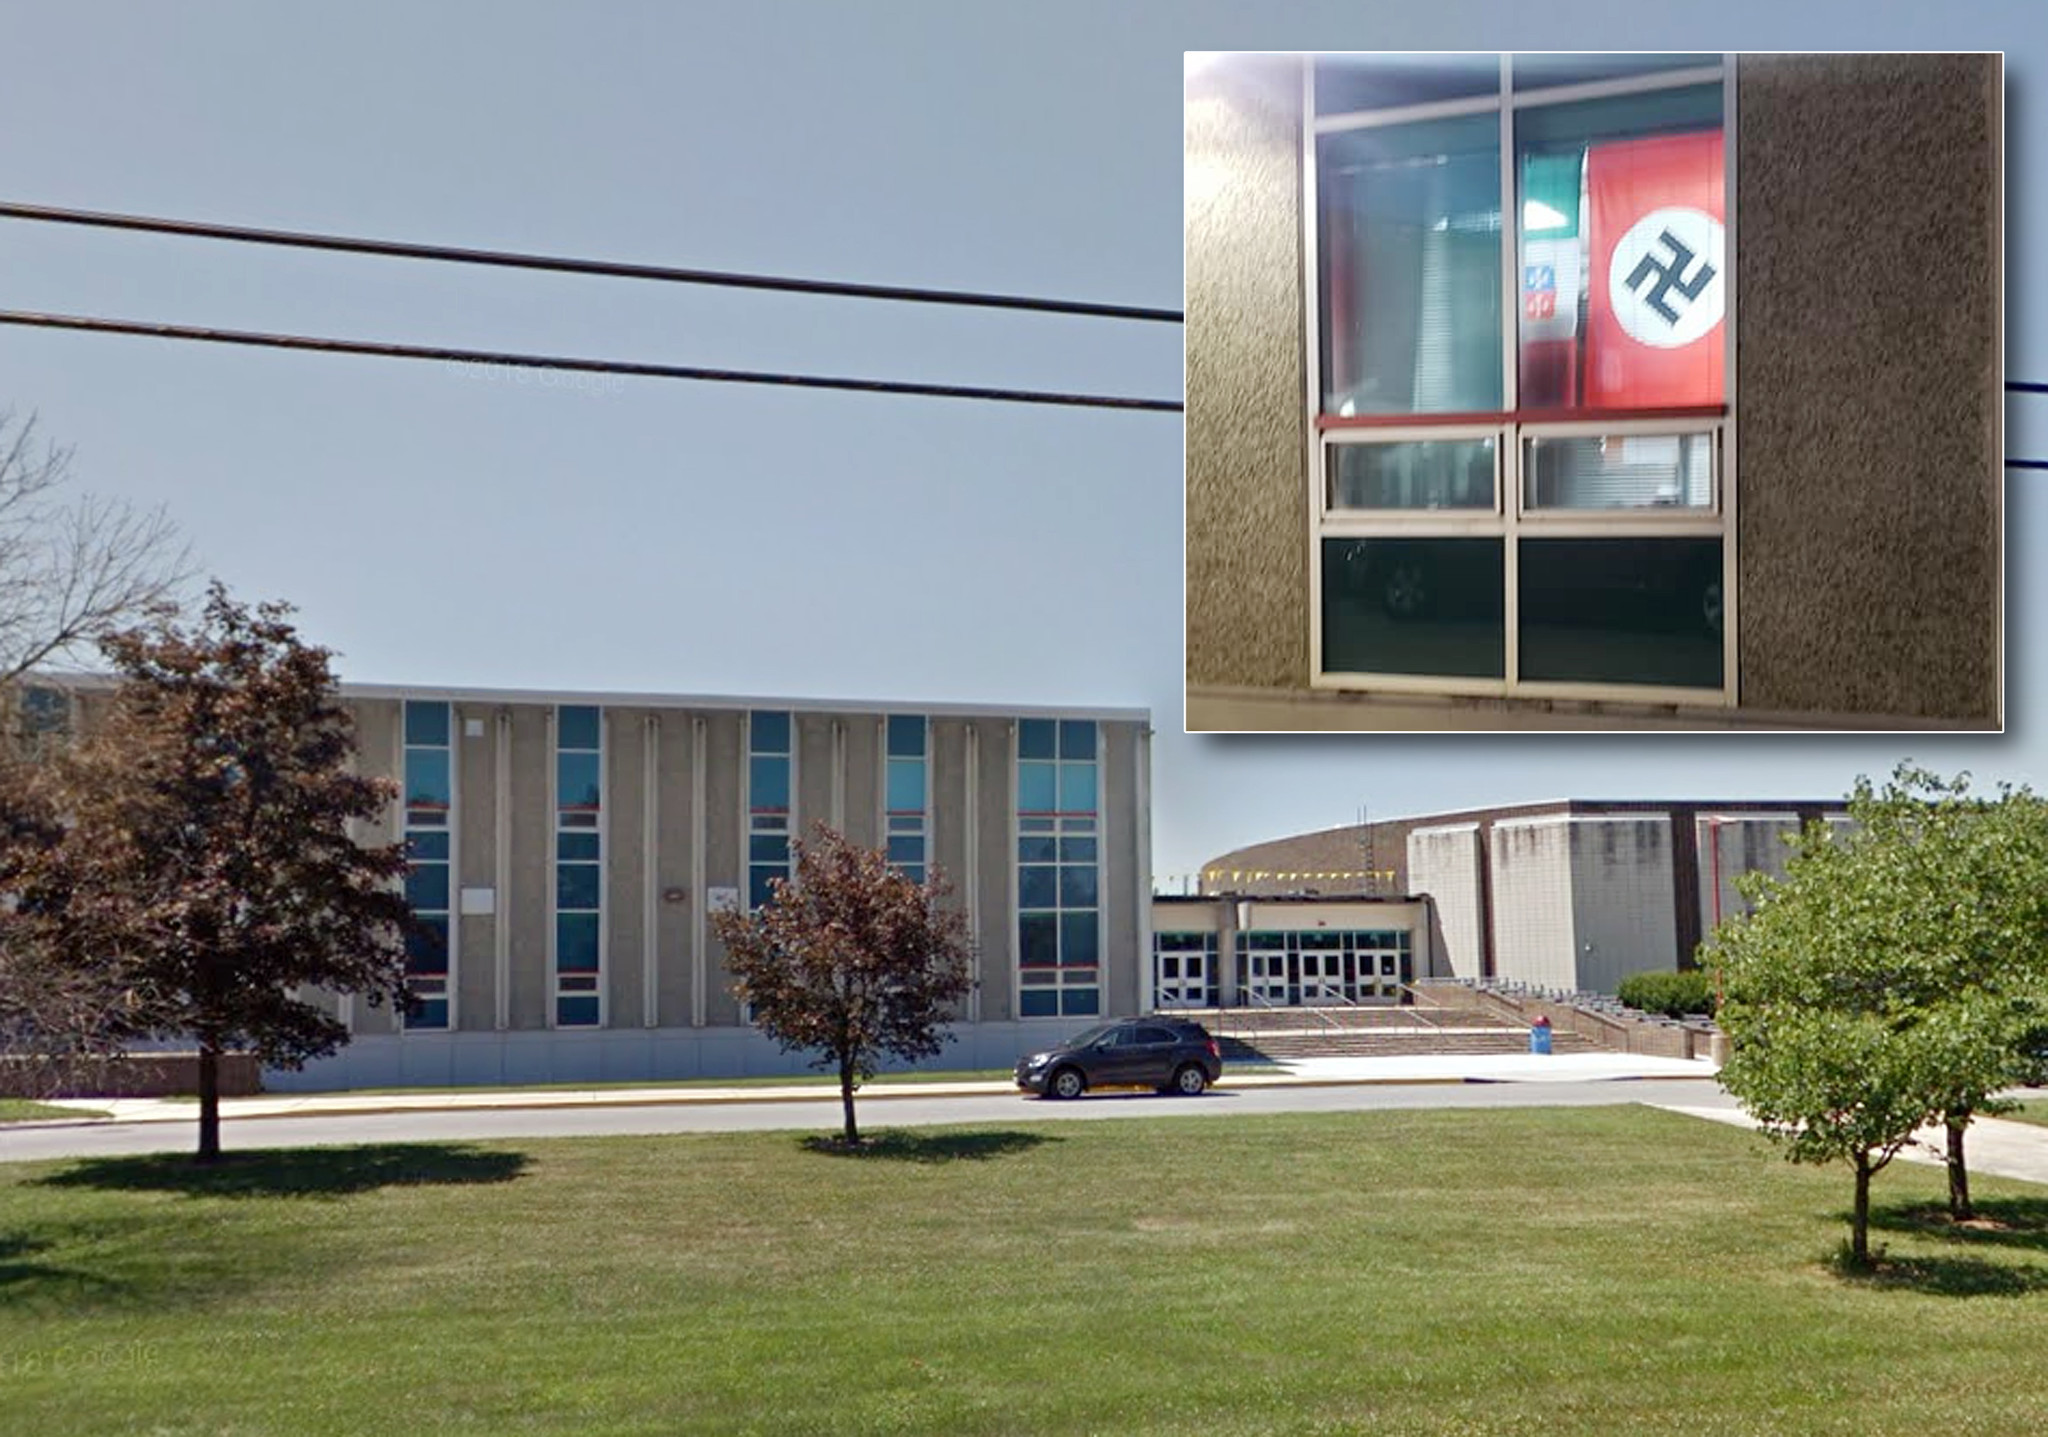 School officials apologize after Nazi flag hanging from classroom window draws outrage